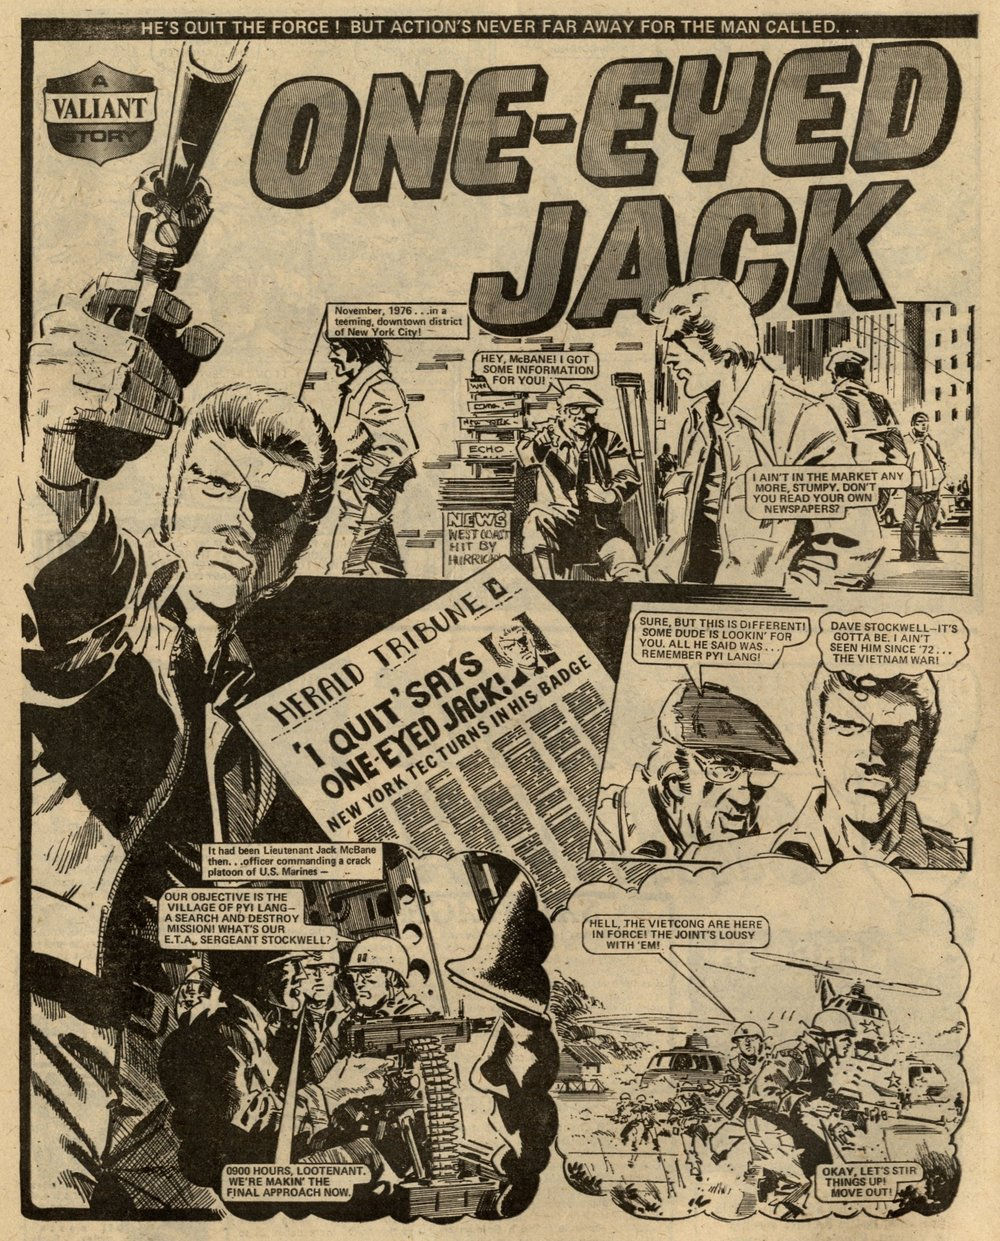 One-eyed Jack: Scott Goodall (writer), John Cooper (artist)